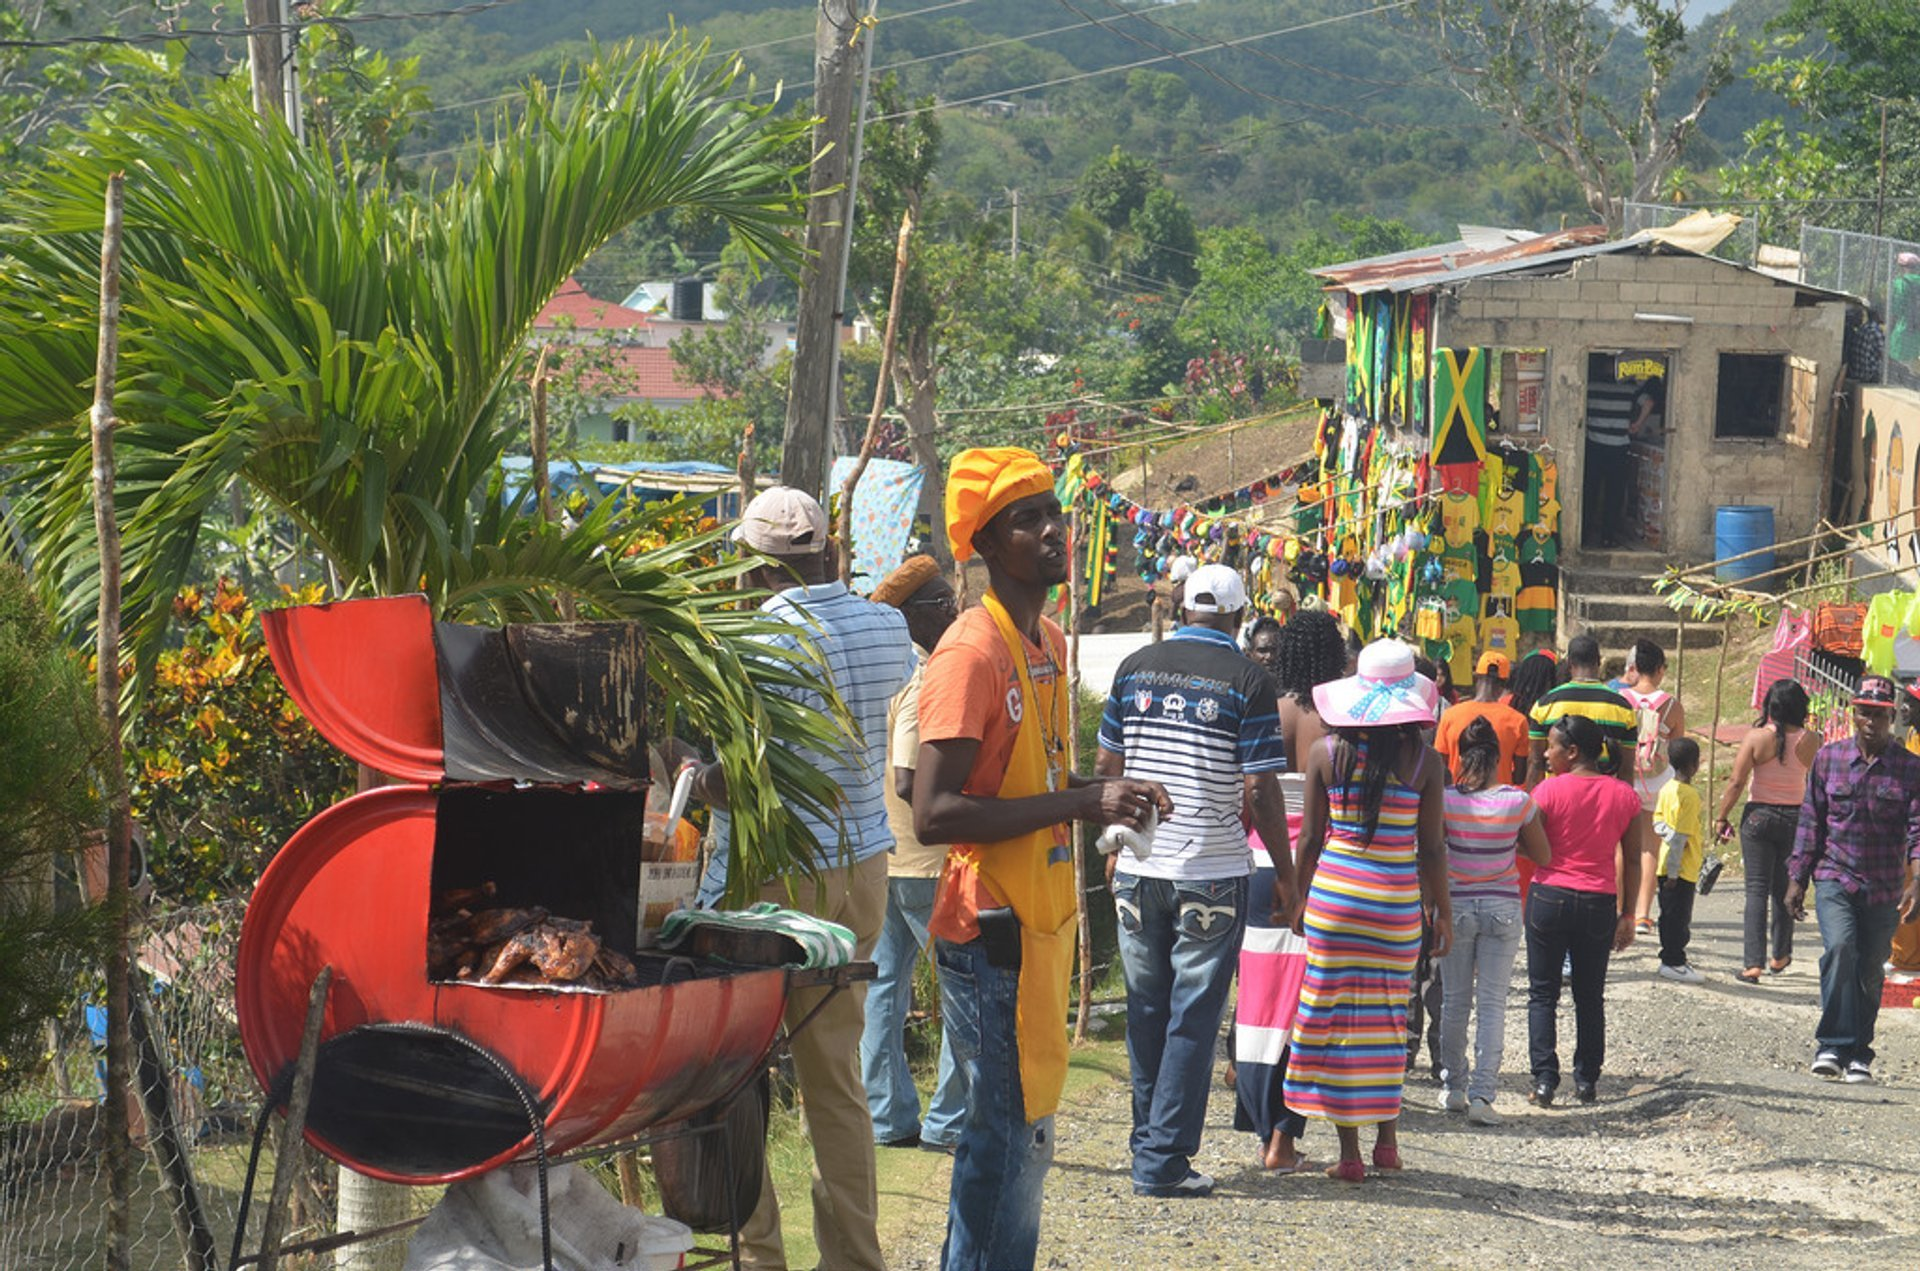 Accompong Maroon Festival in Jamaica 2020 - Best Time